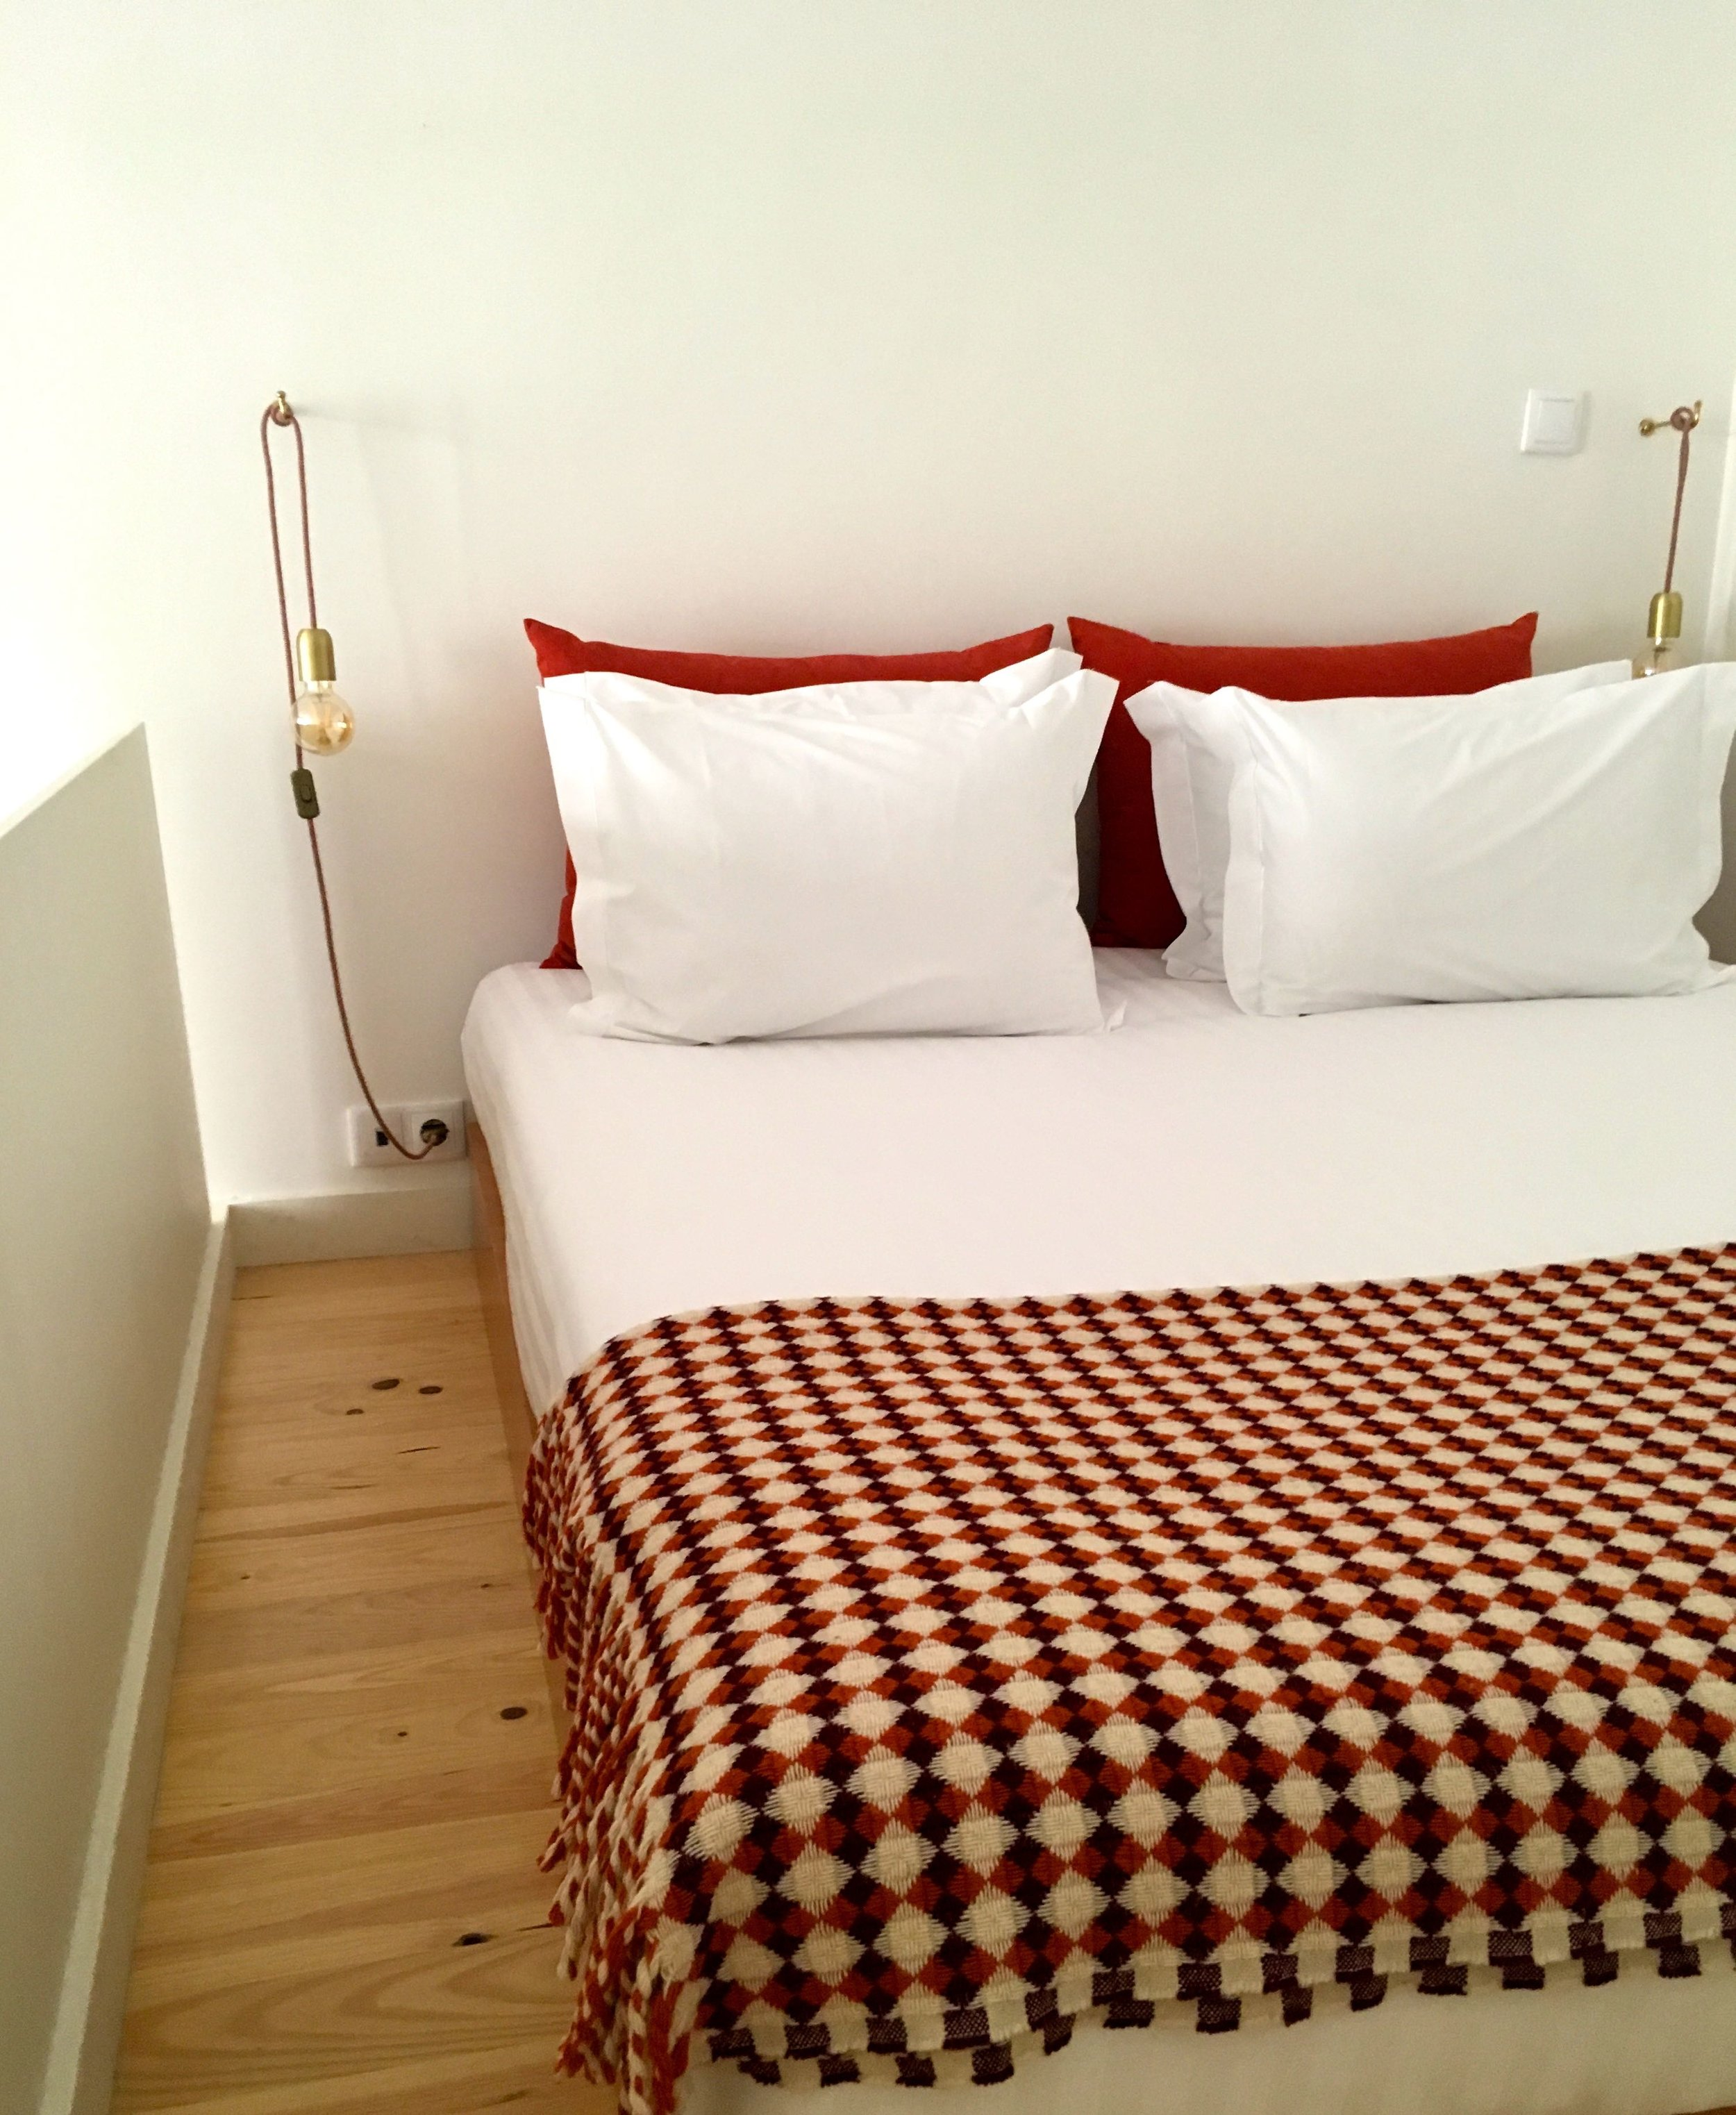 Just enough space for a bed in the quirky Porto apartment